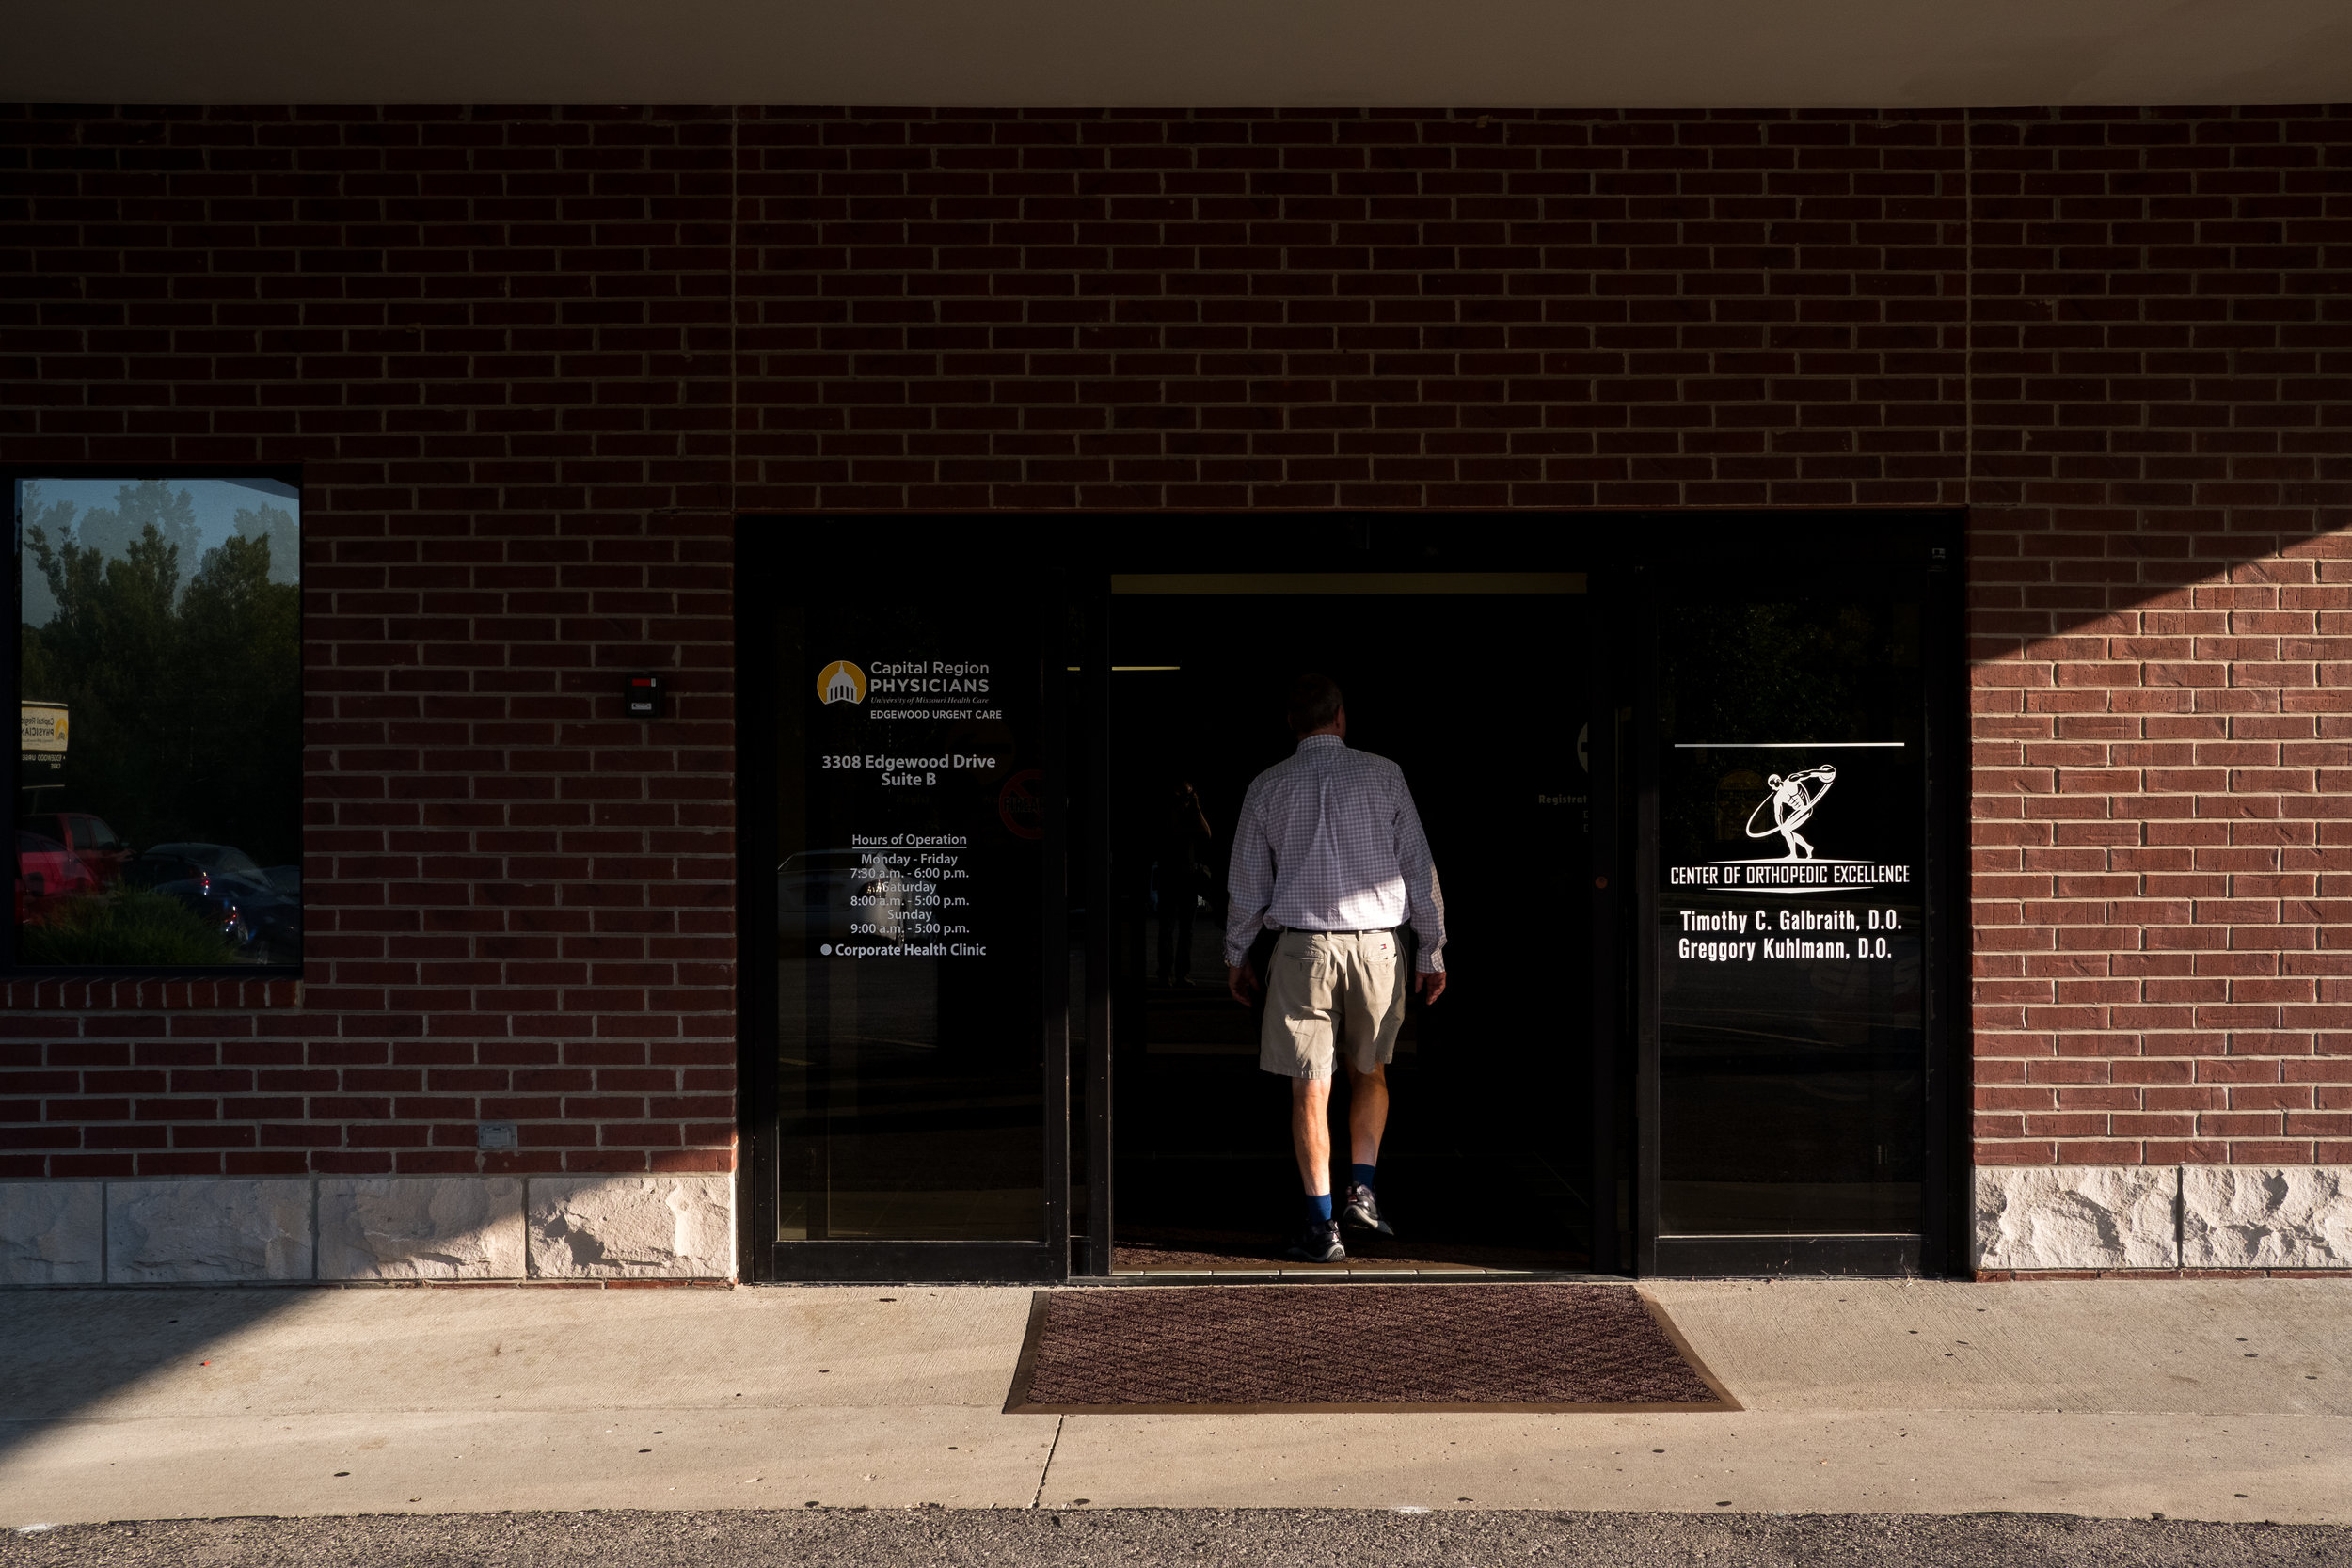 Greg enters a clinic in Jefferson City to meet with his orthopedic surgeon because of an elbow that his been causing him pain.